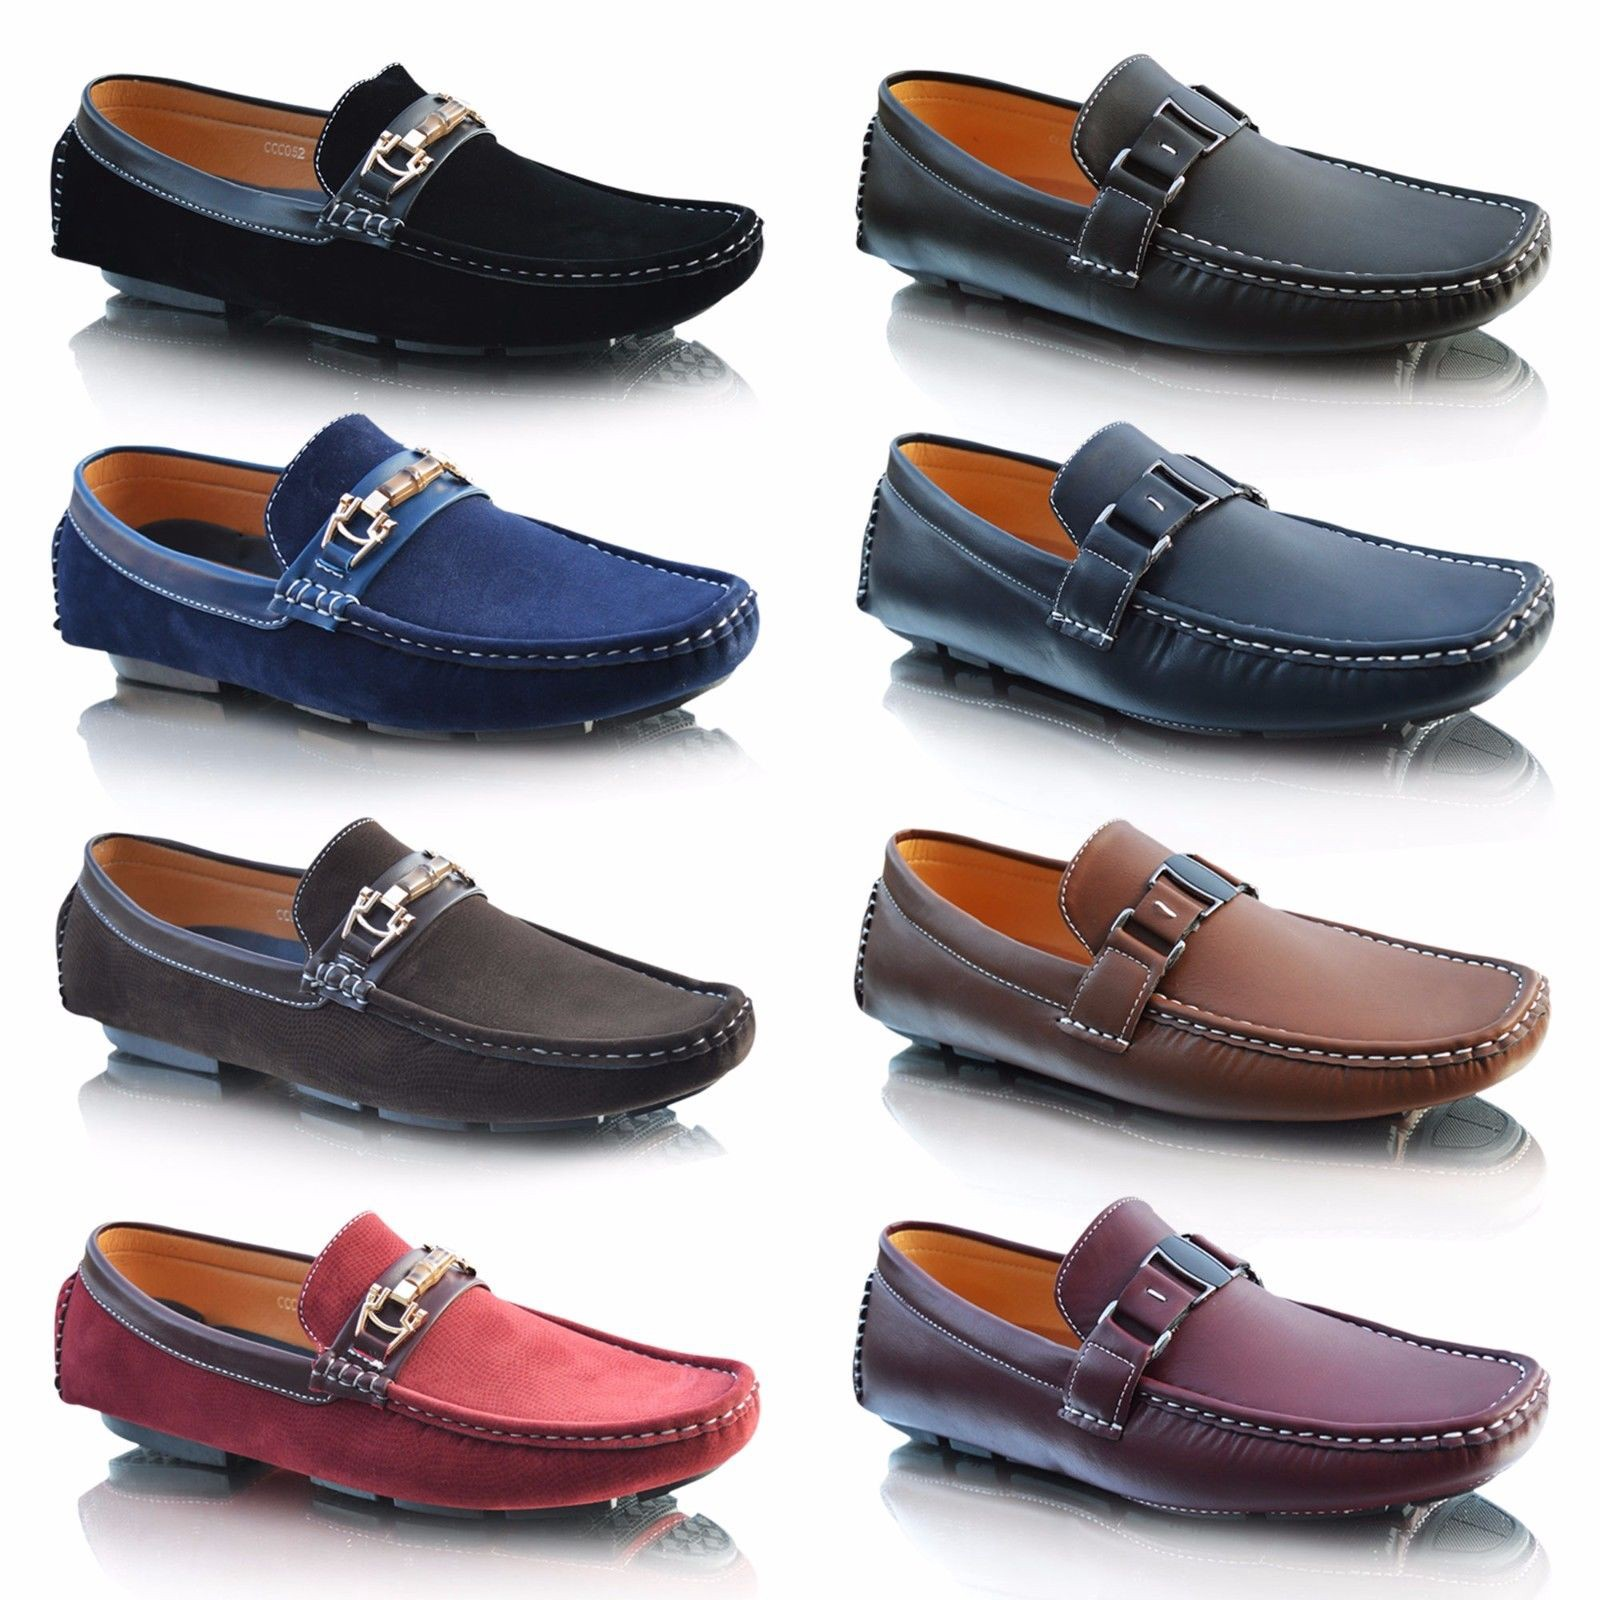 Mens New Casual Leather Loafer Flats Slip On Suede Moccasins Boat Driving Shoes By Blue Chip Gravity Medium